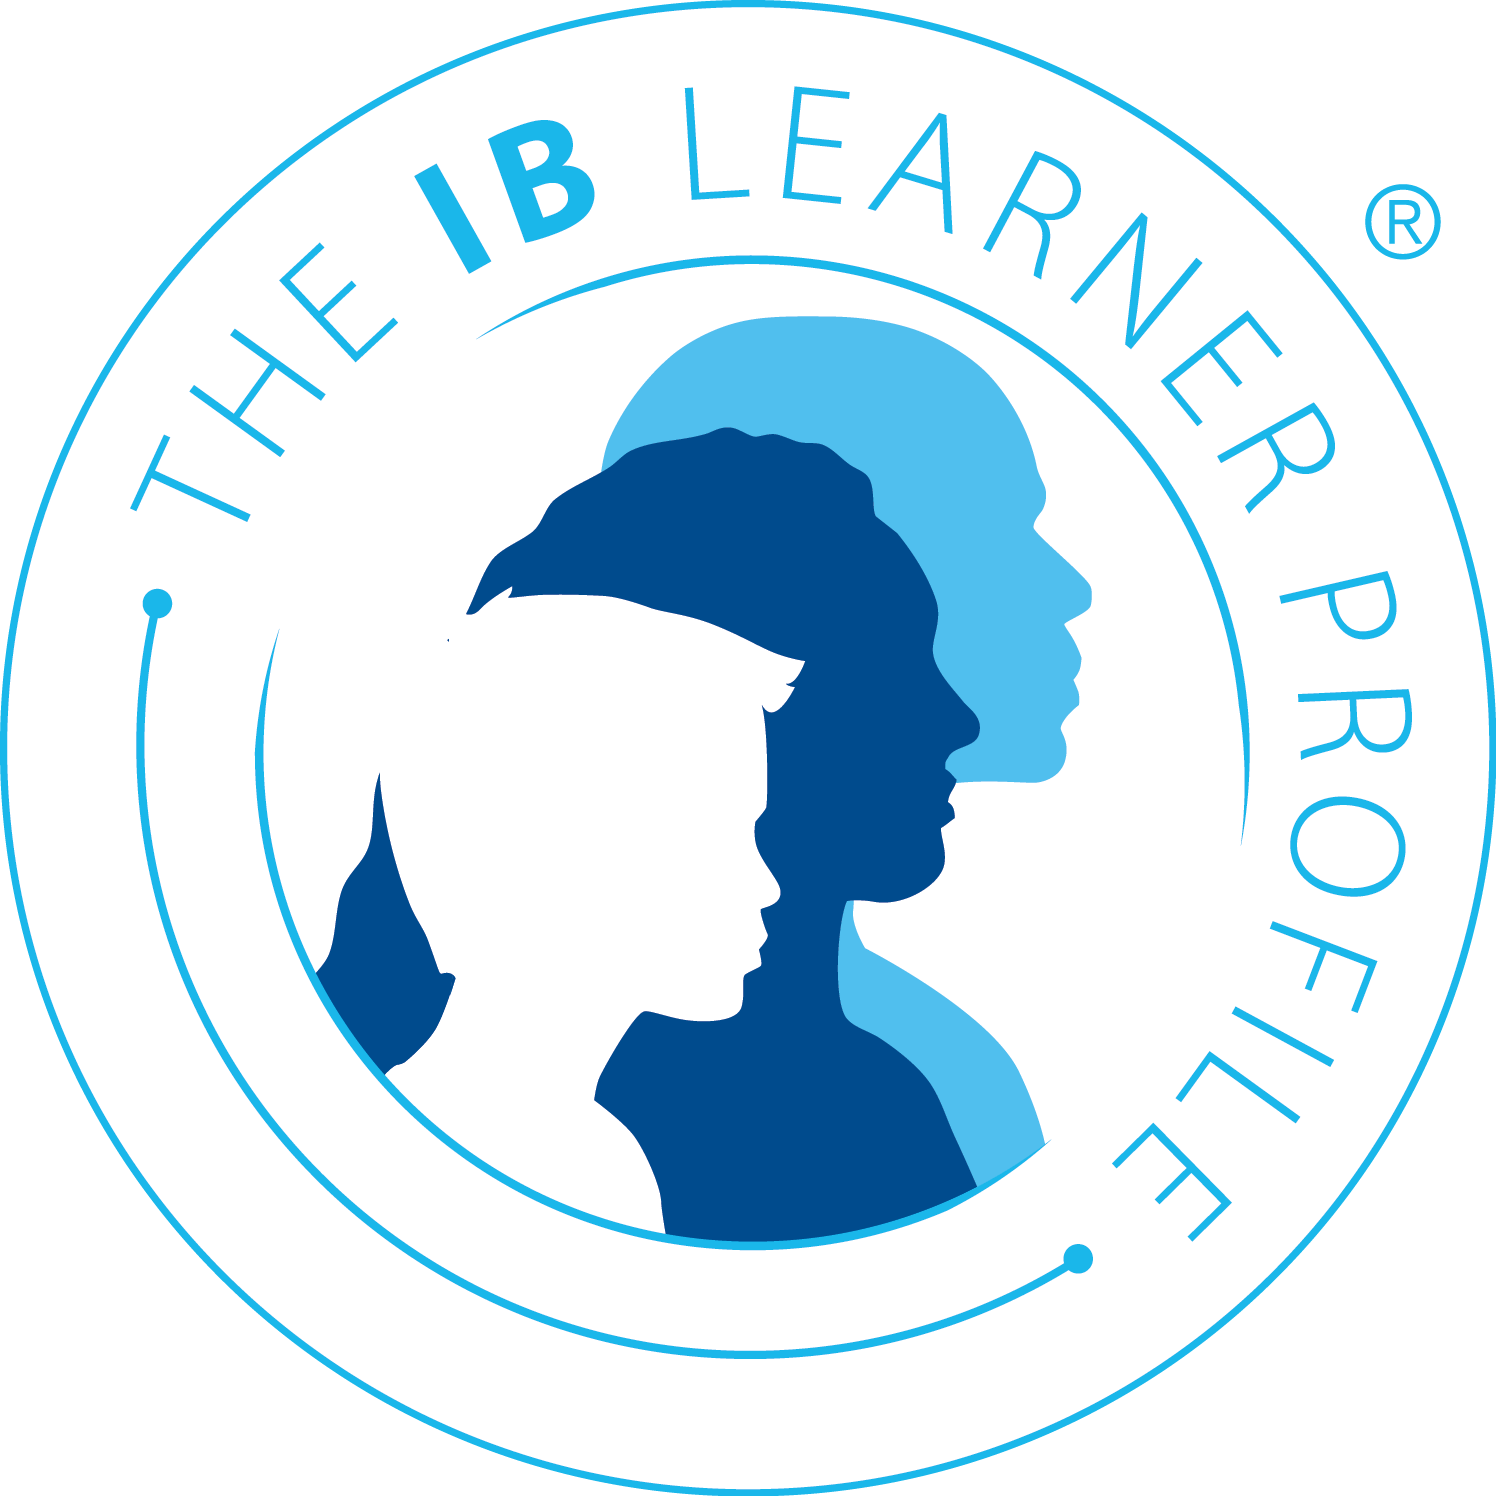 Schedule clipart student profile. The ib mission and